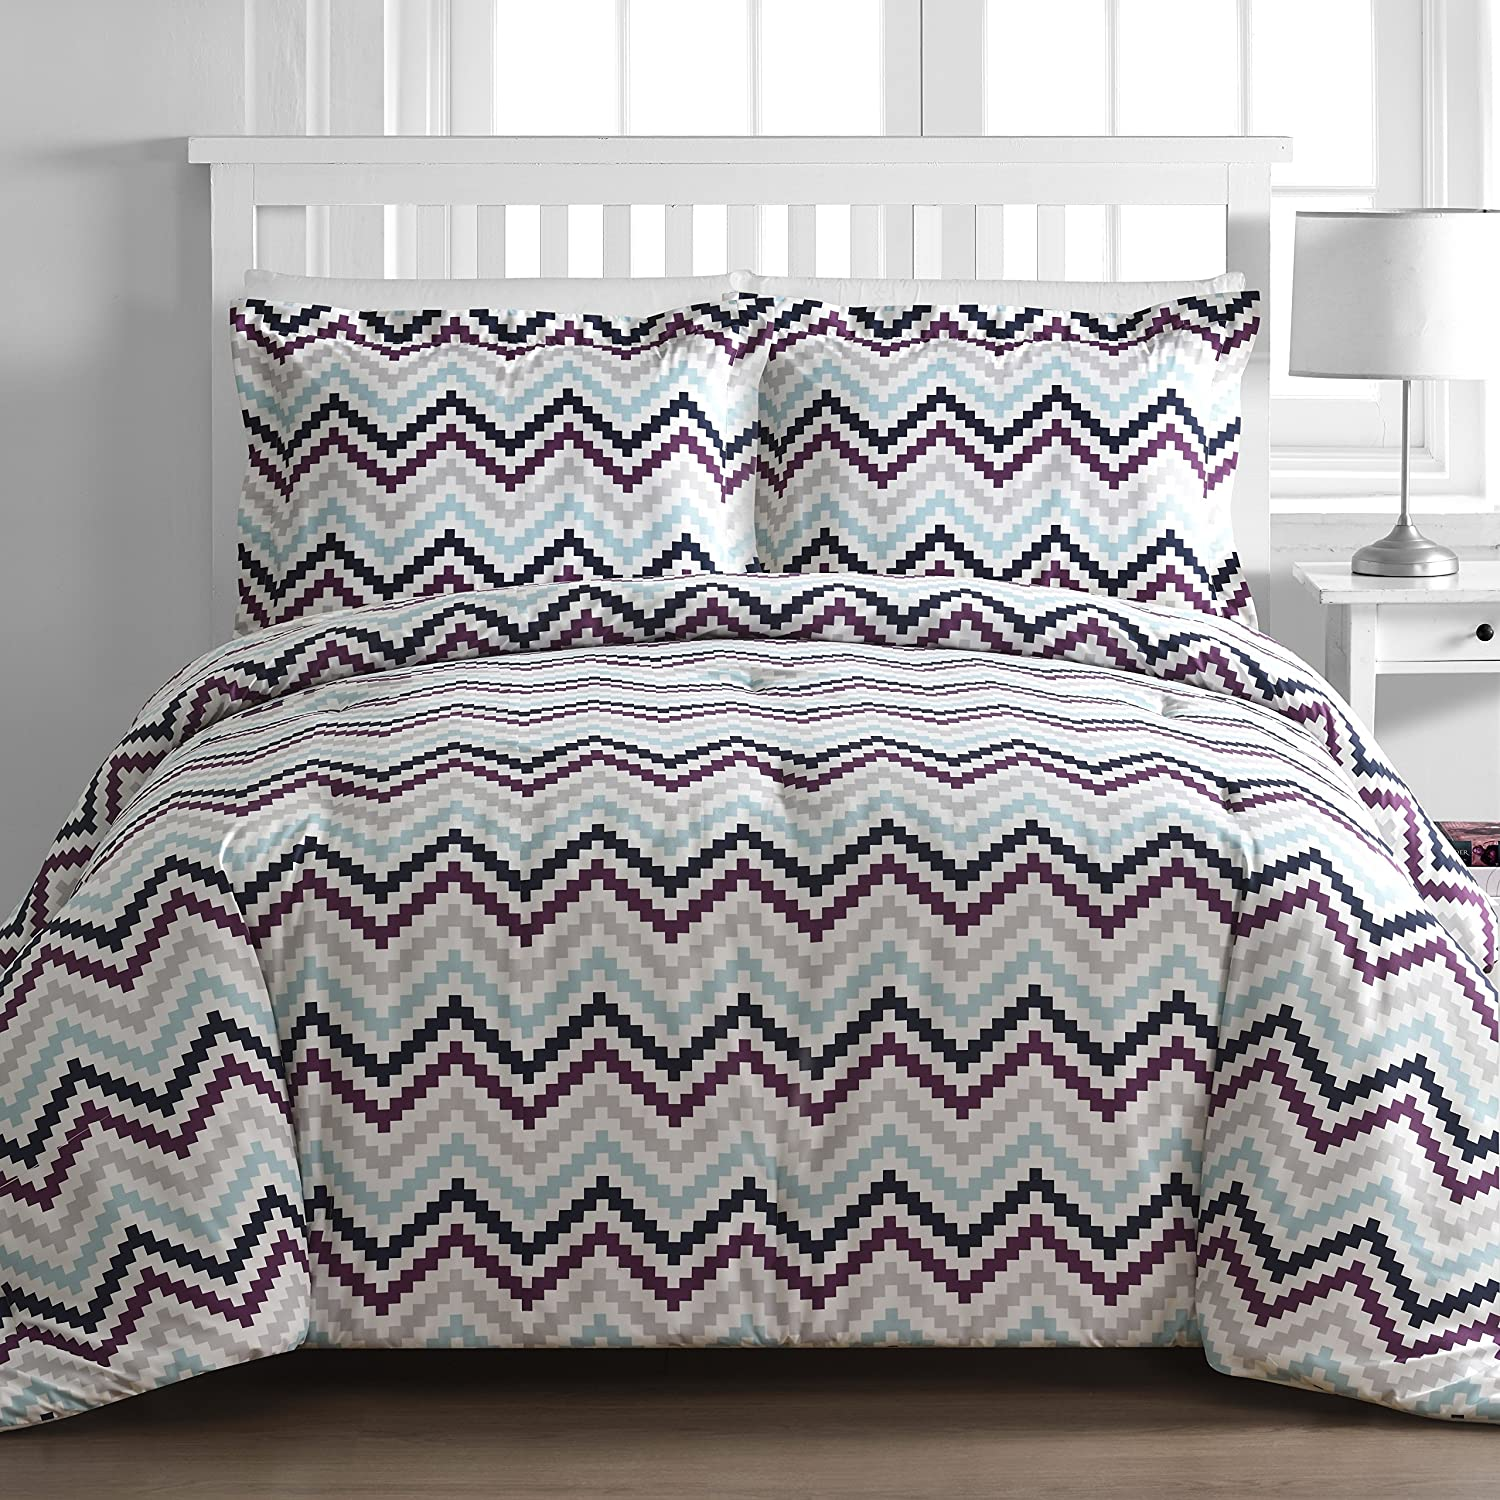 P&R Bedding 2 Piece Square Chevron Plum Multi Color Comforter Set